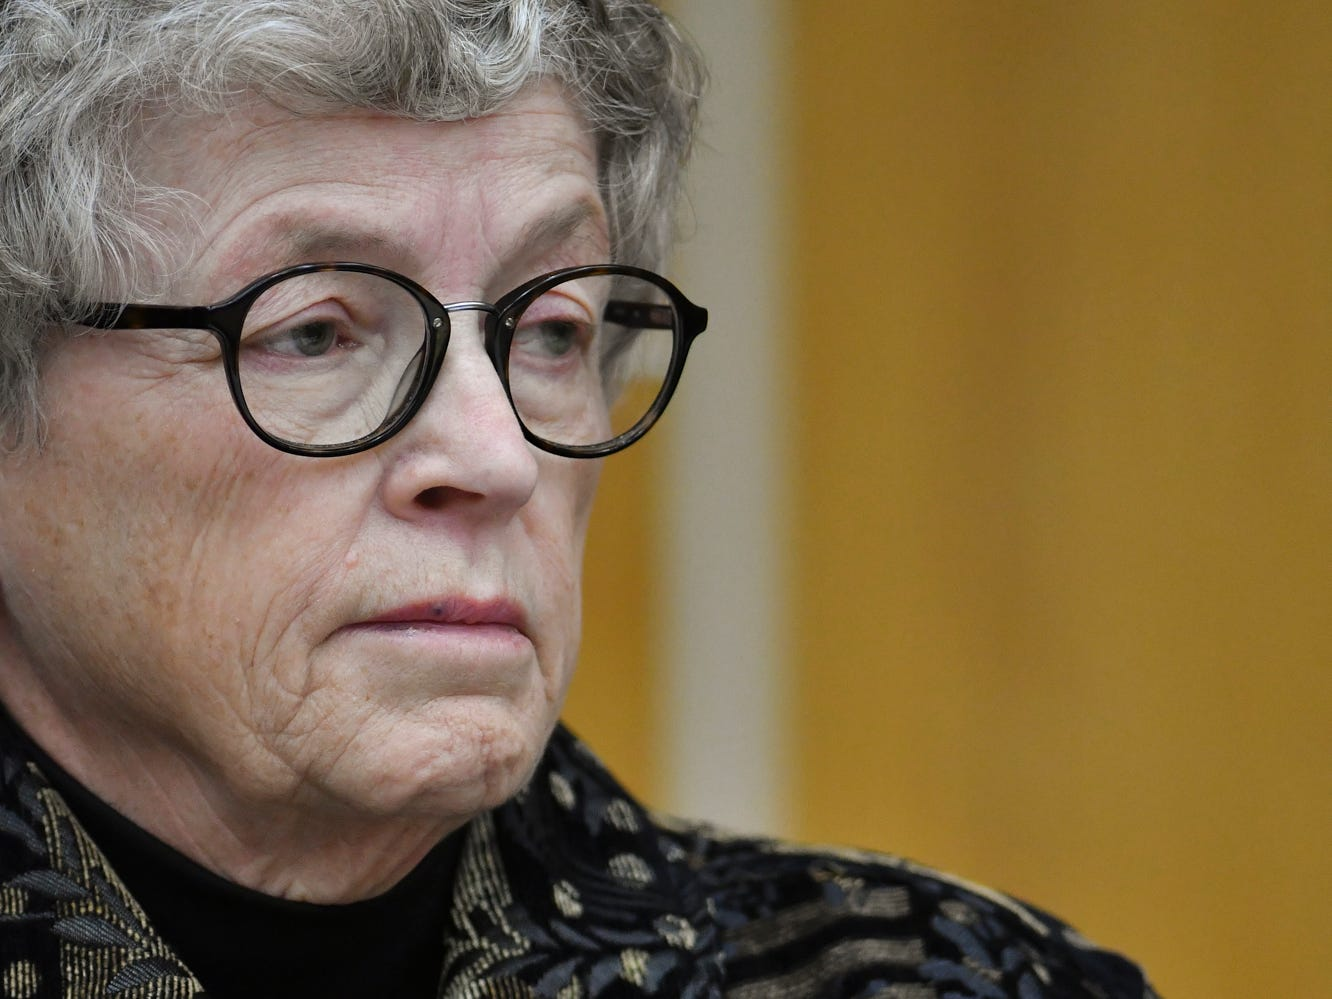 Former MSU President Lou Anna Simon listens as Judge Julie Reincke reads off charges in Eaton County Court Monday, Nov. 26, 2018, during her arraignment on four charges of lying to police related to the Larry Nassar investigation.  [AP Photo/Matthew Dae Smith/Lansing State Journal]